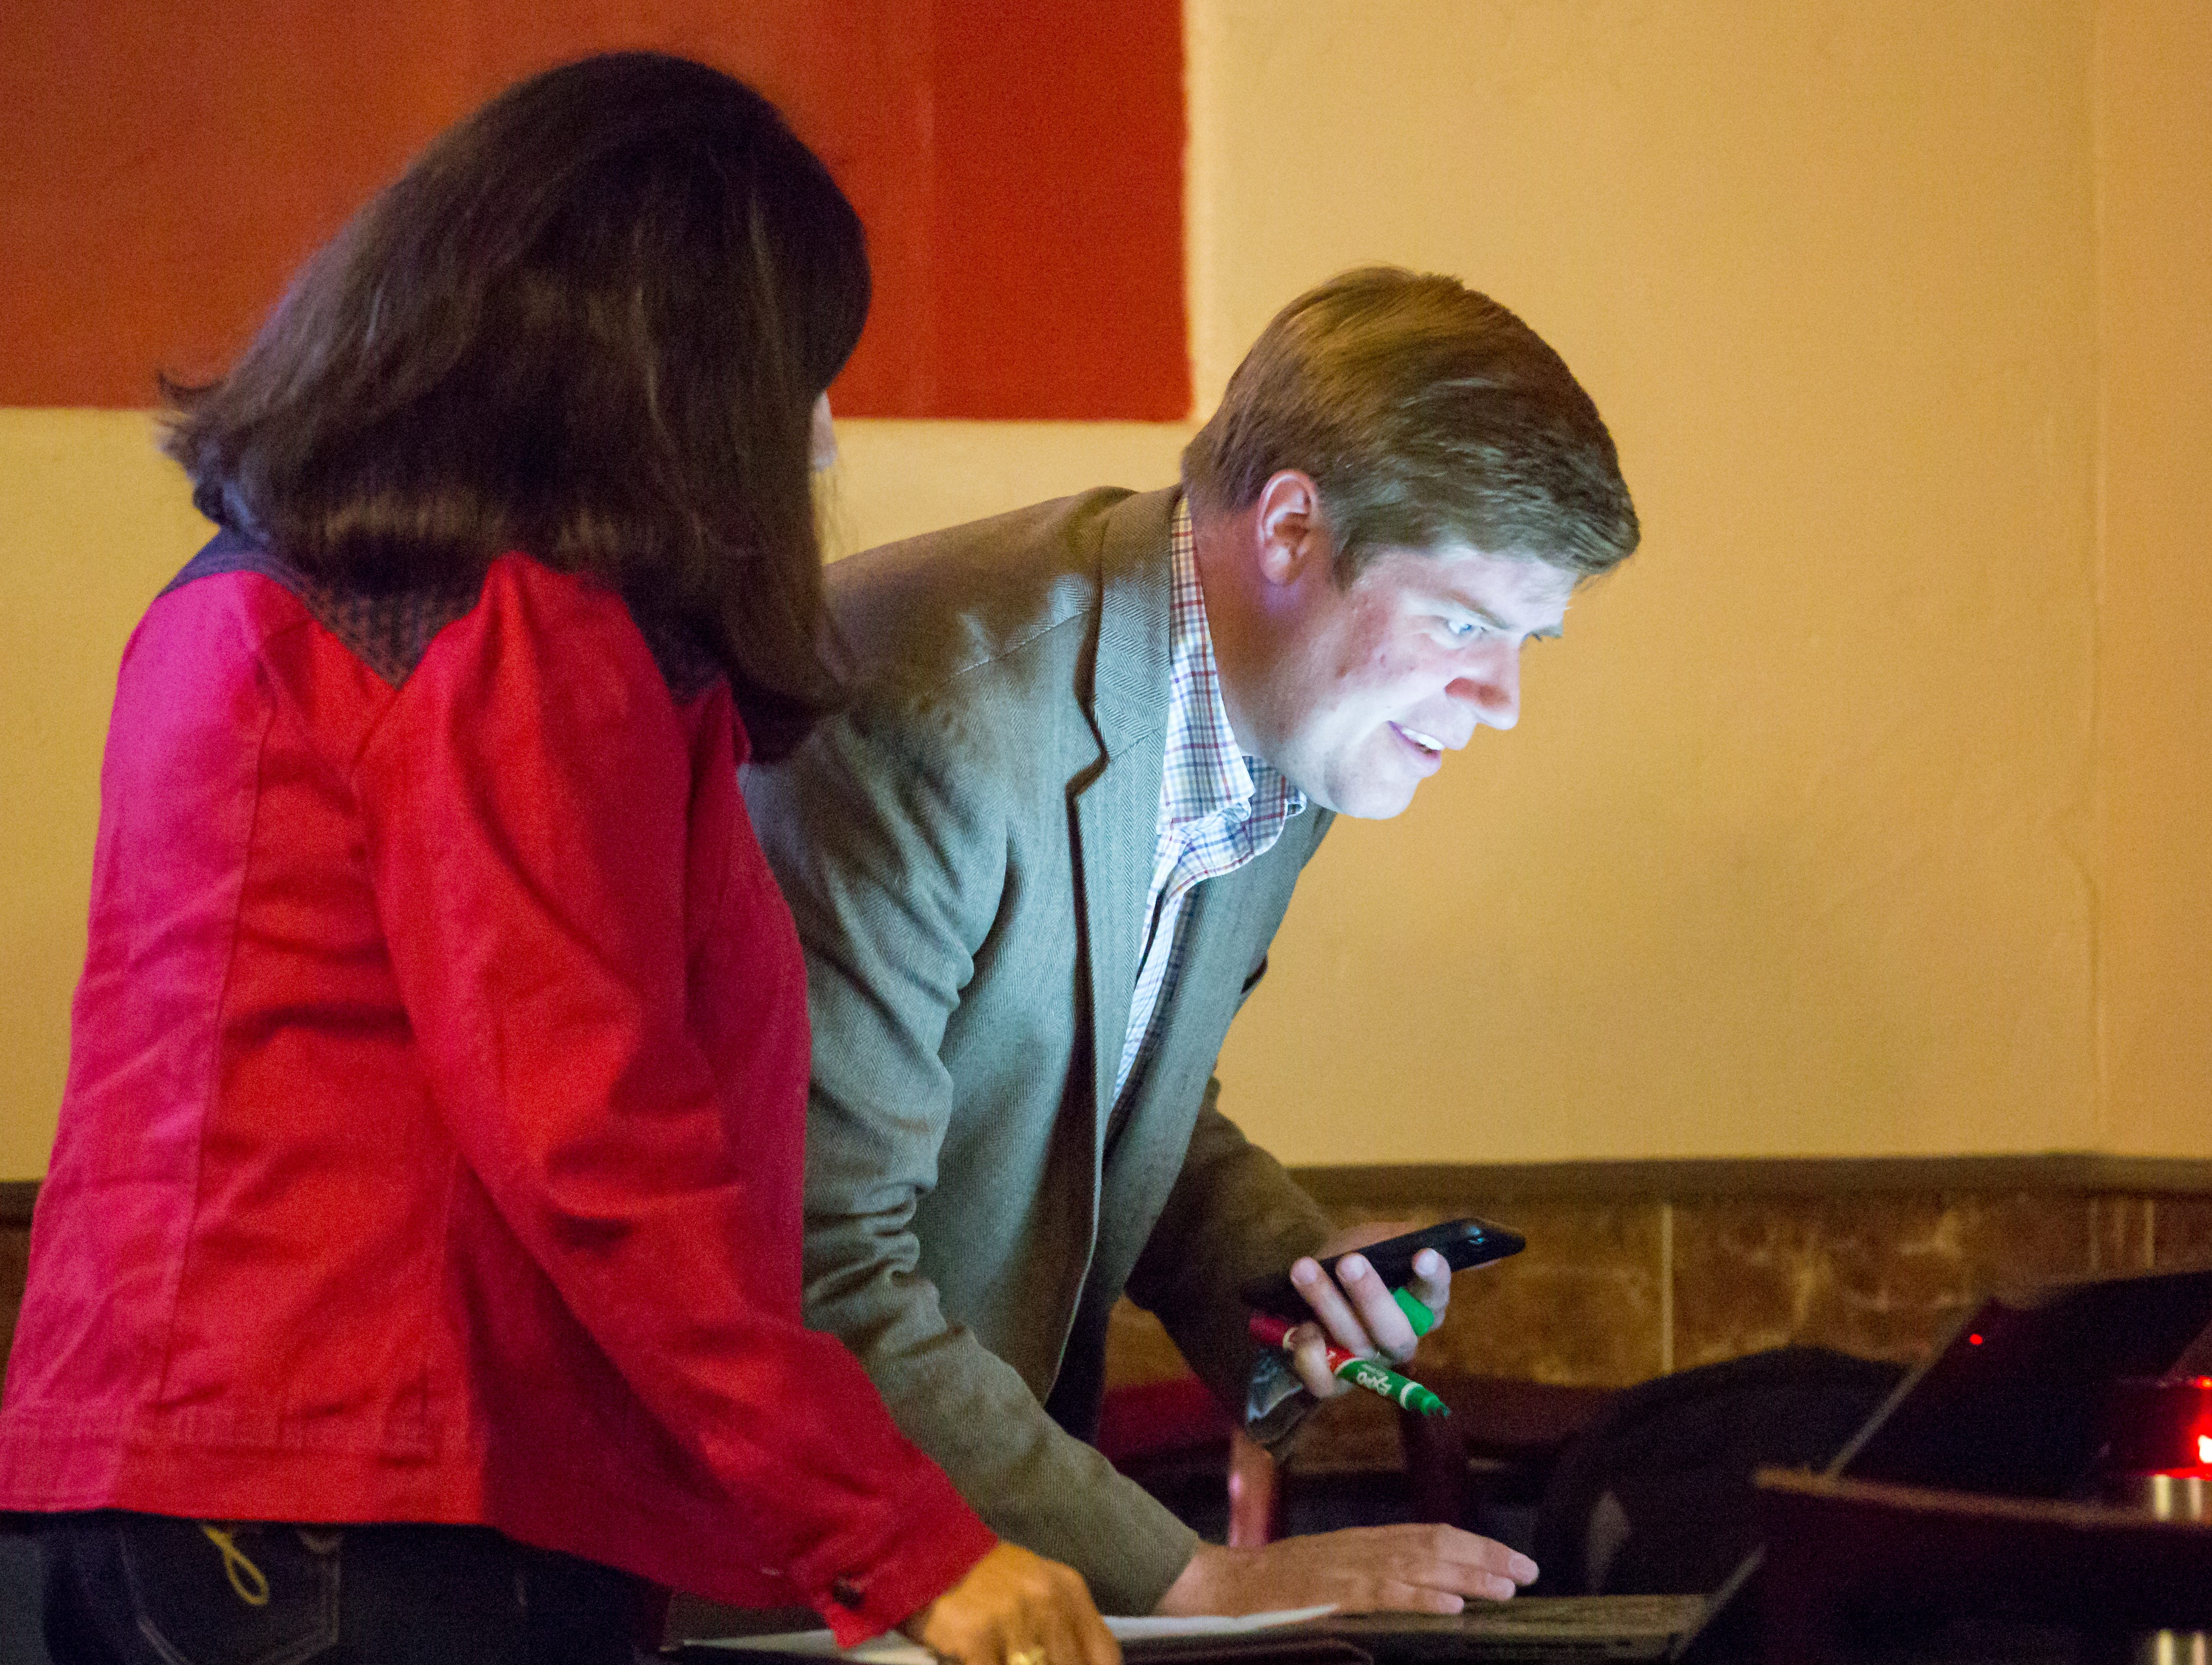 Incumbent District 3 Doña Ana County Commissioner Benjamin L. Rawson looks at polling projections during his election watch party at the Sunset Grill in Las Cruces on Tuesday, Nov. 6, 2018 during the mid-term election.